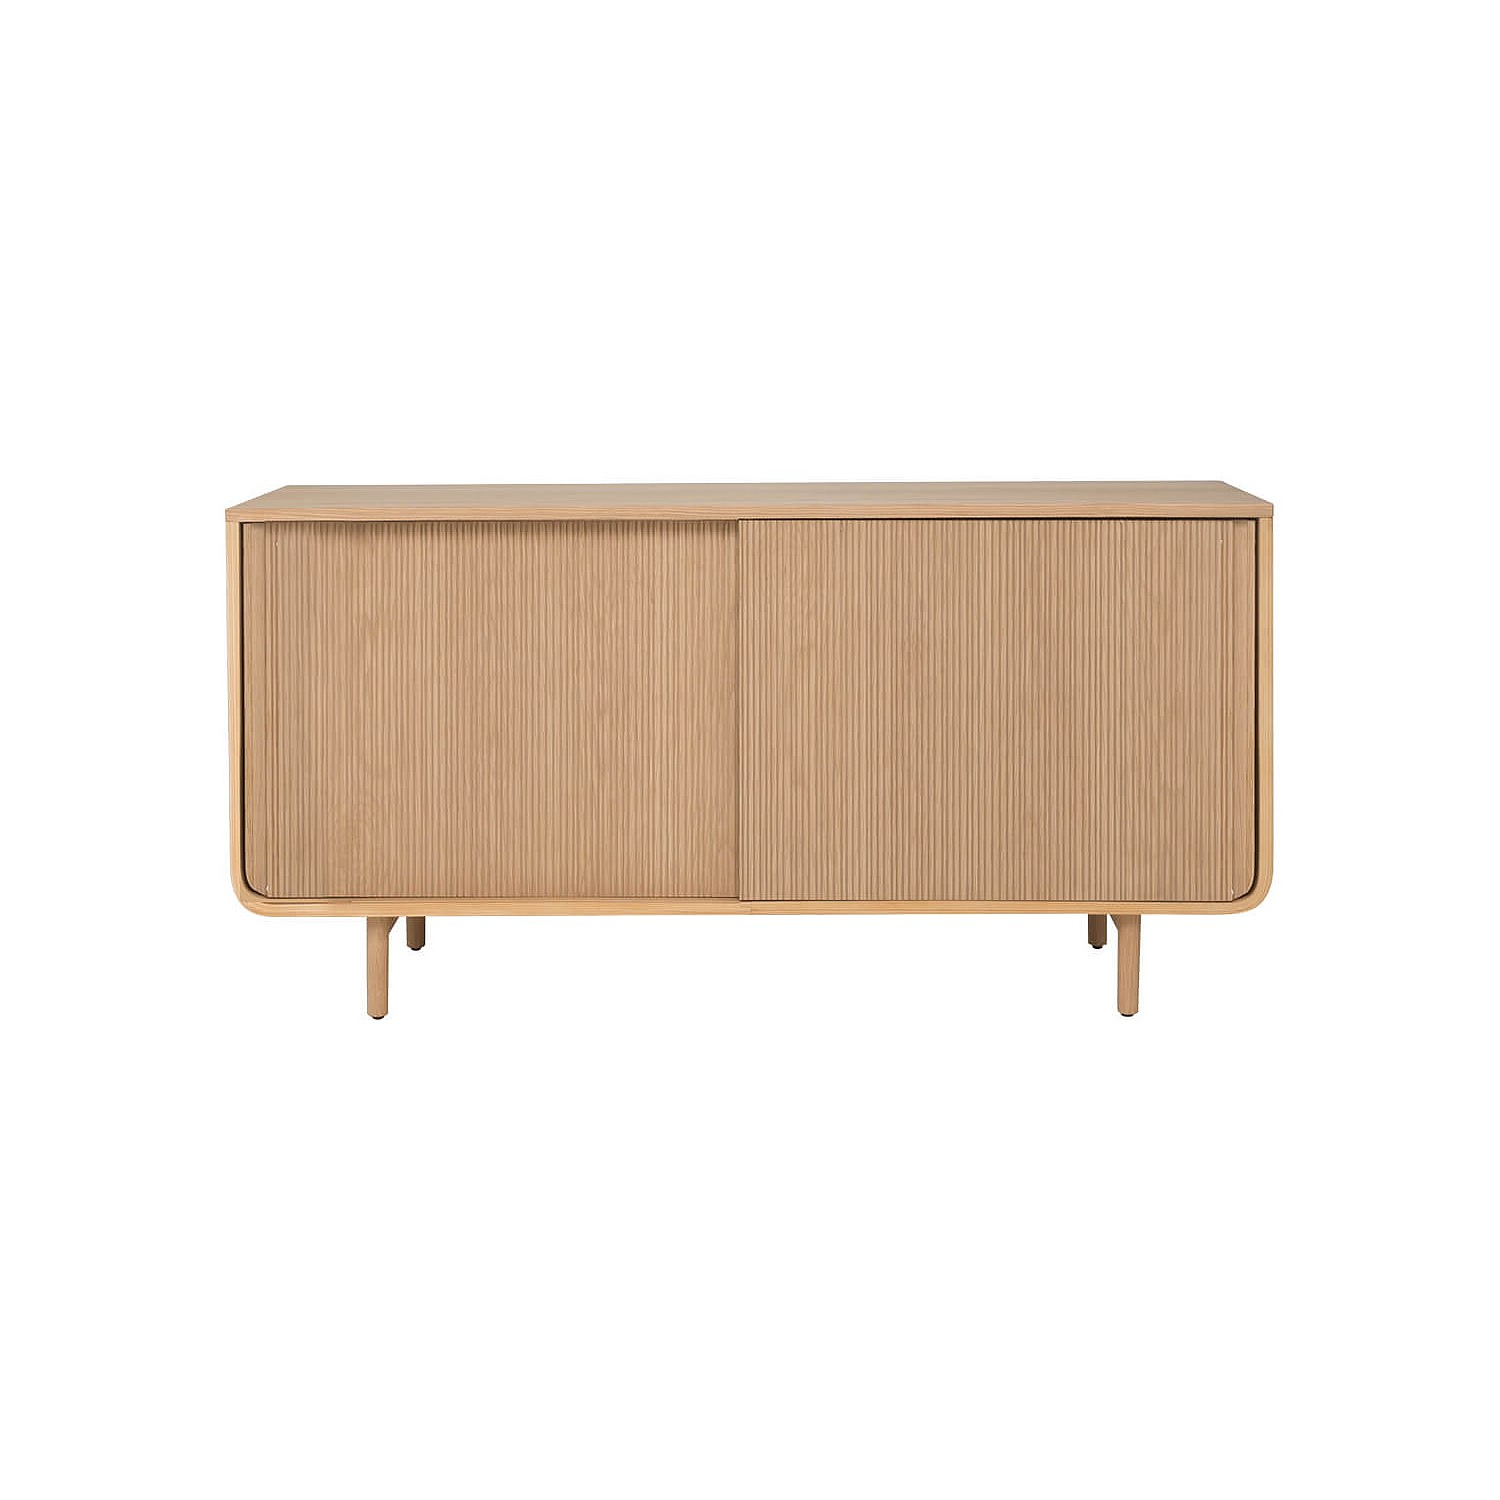 What's New In Furniture – Curve Buffet With Regard To 2 Shelf Buffets With Curved Legs (View 19 of 20)